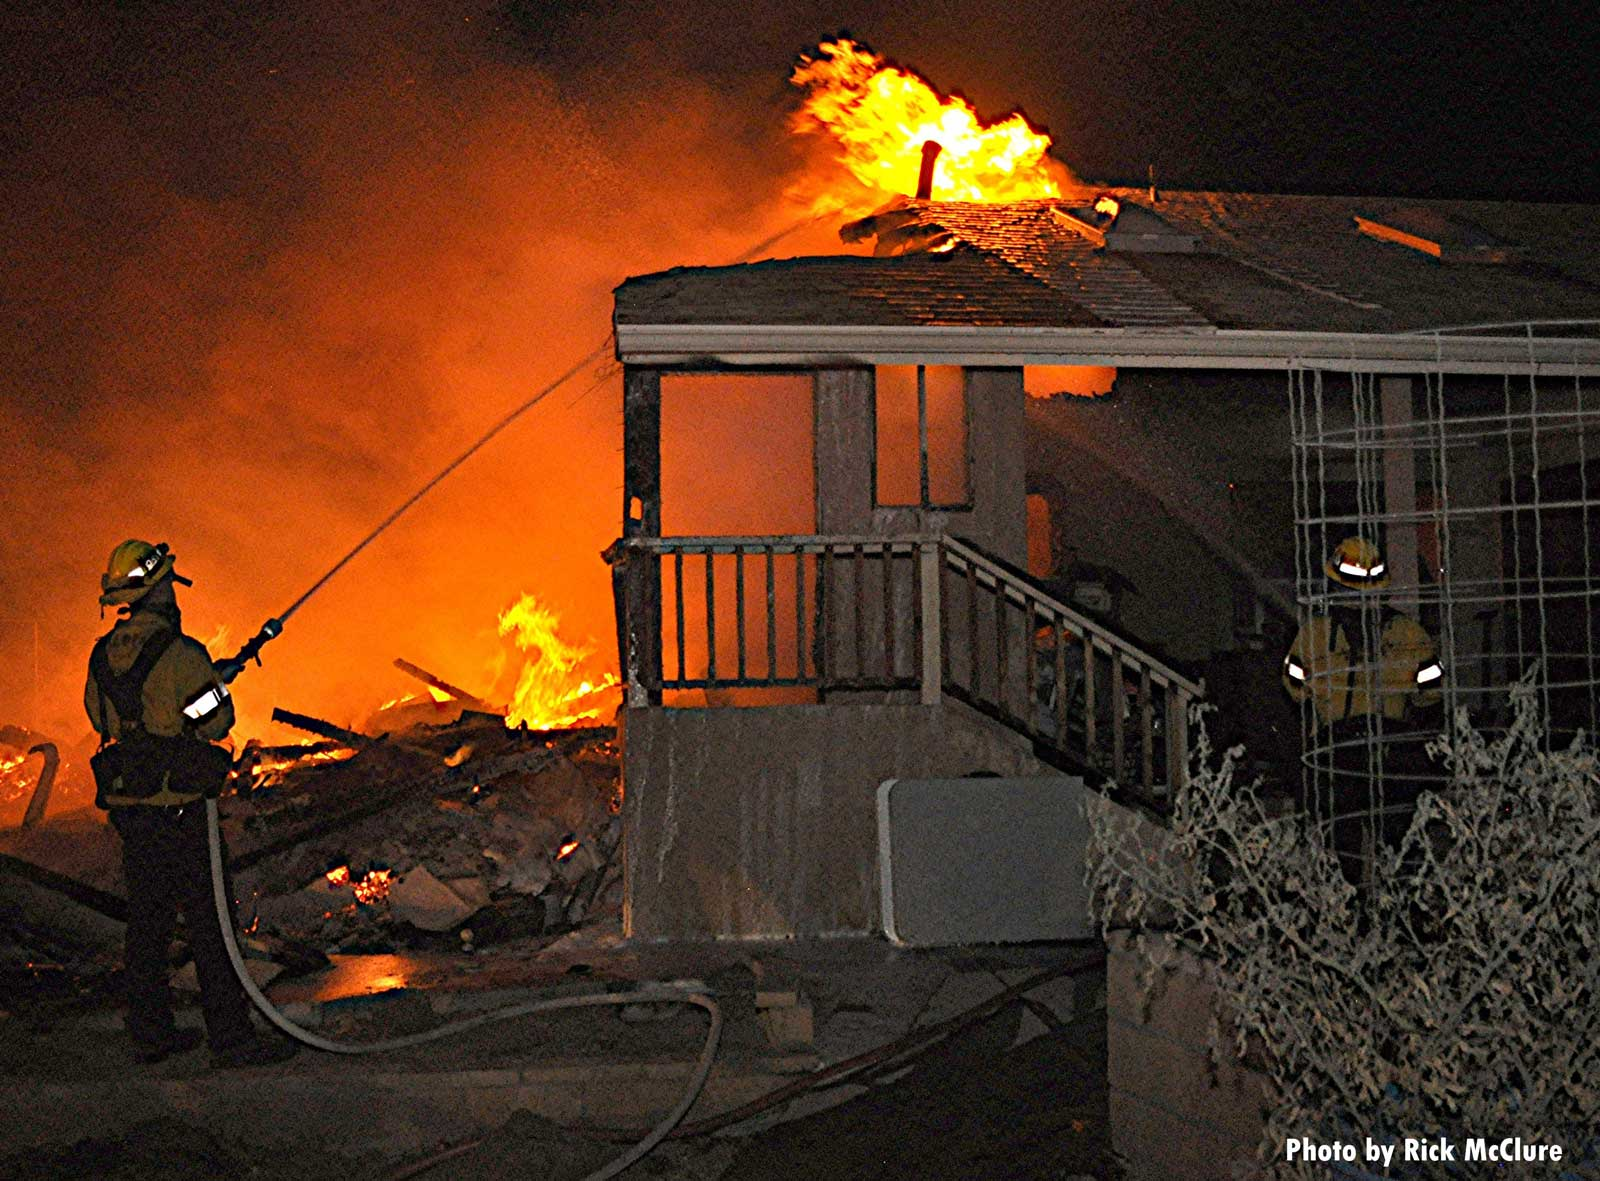 Flames consume a building as firefighter applies water